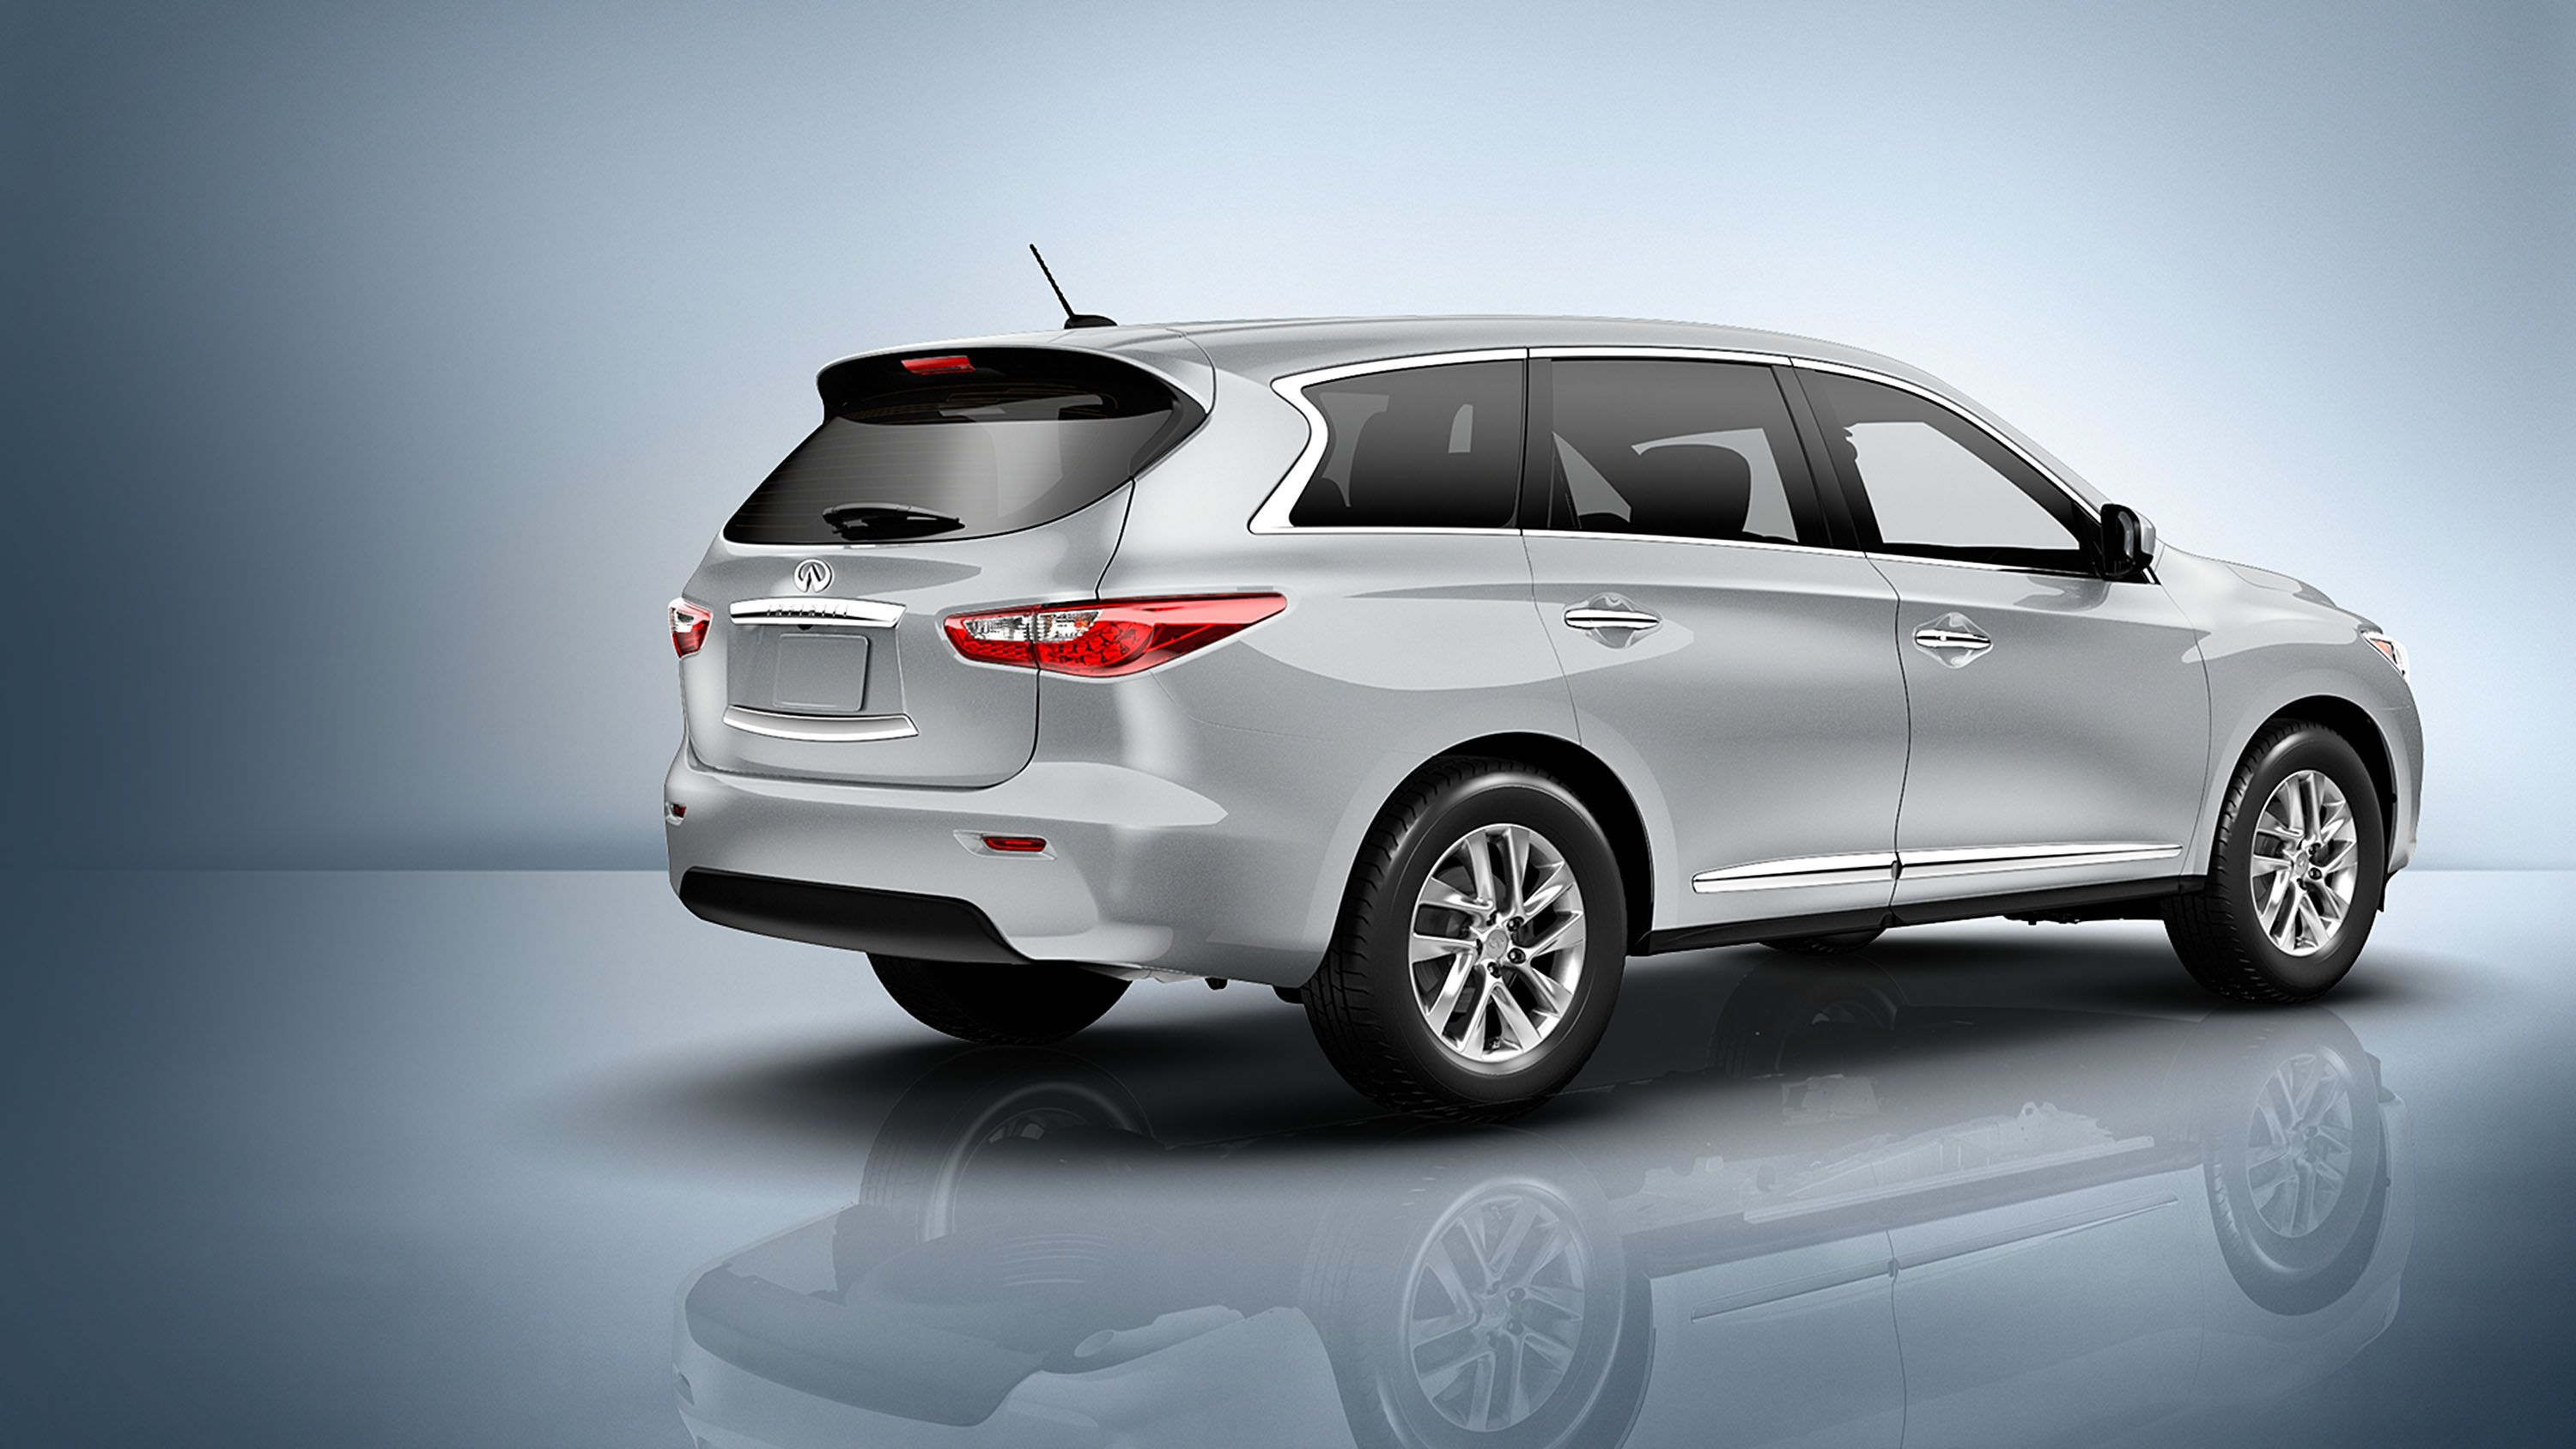 View Photos And Videos Of The 2014 Infiniti Qx60 Crossover Infiniti Usa Infiniti Luxury Crossovers